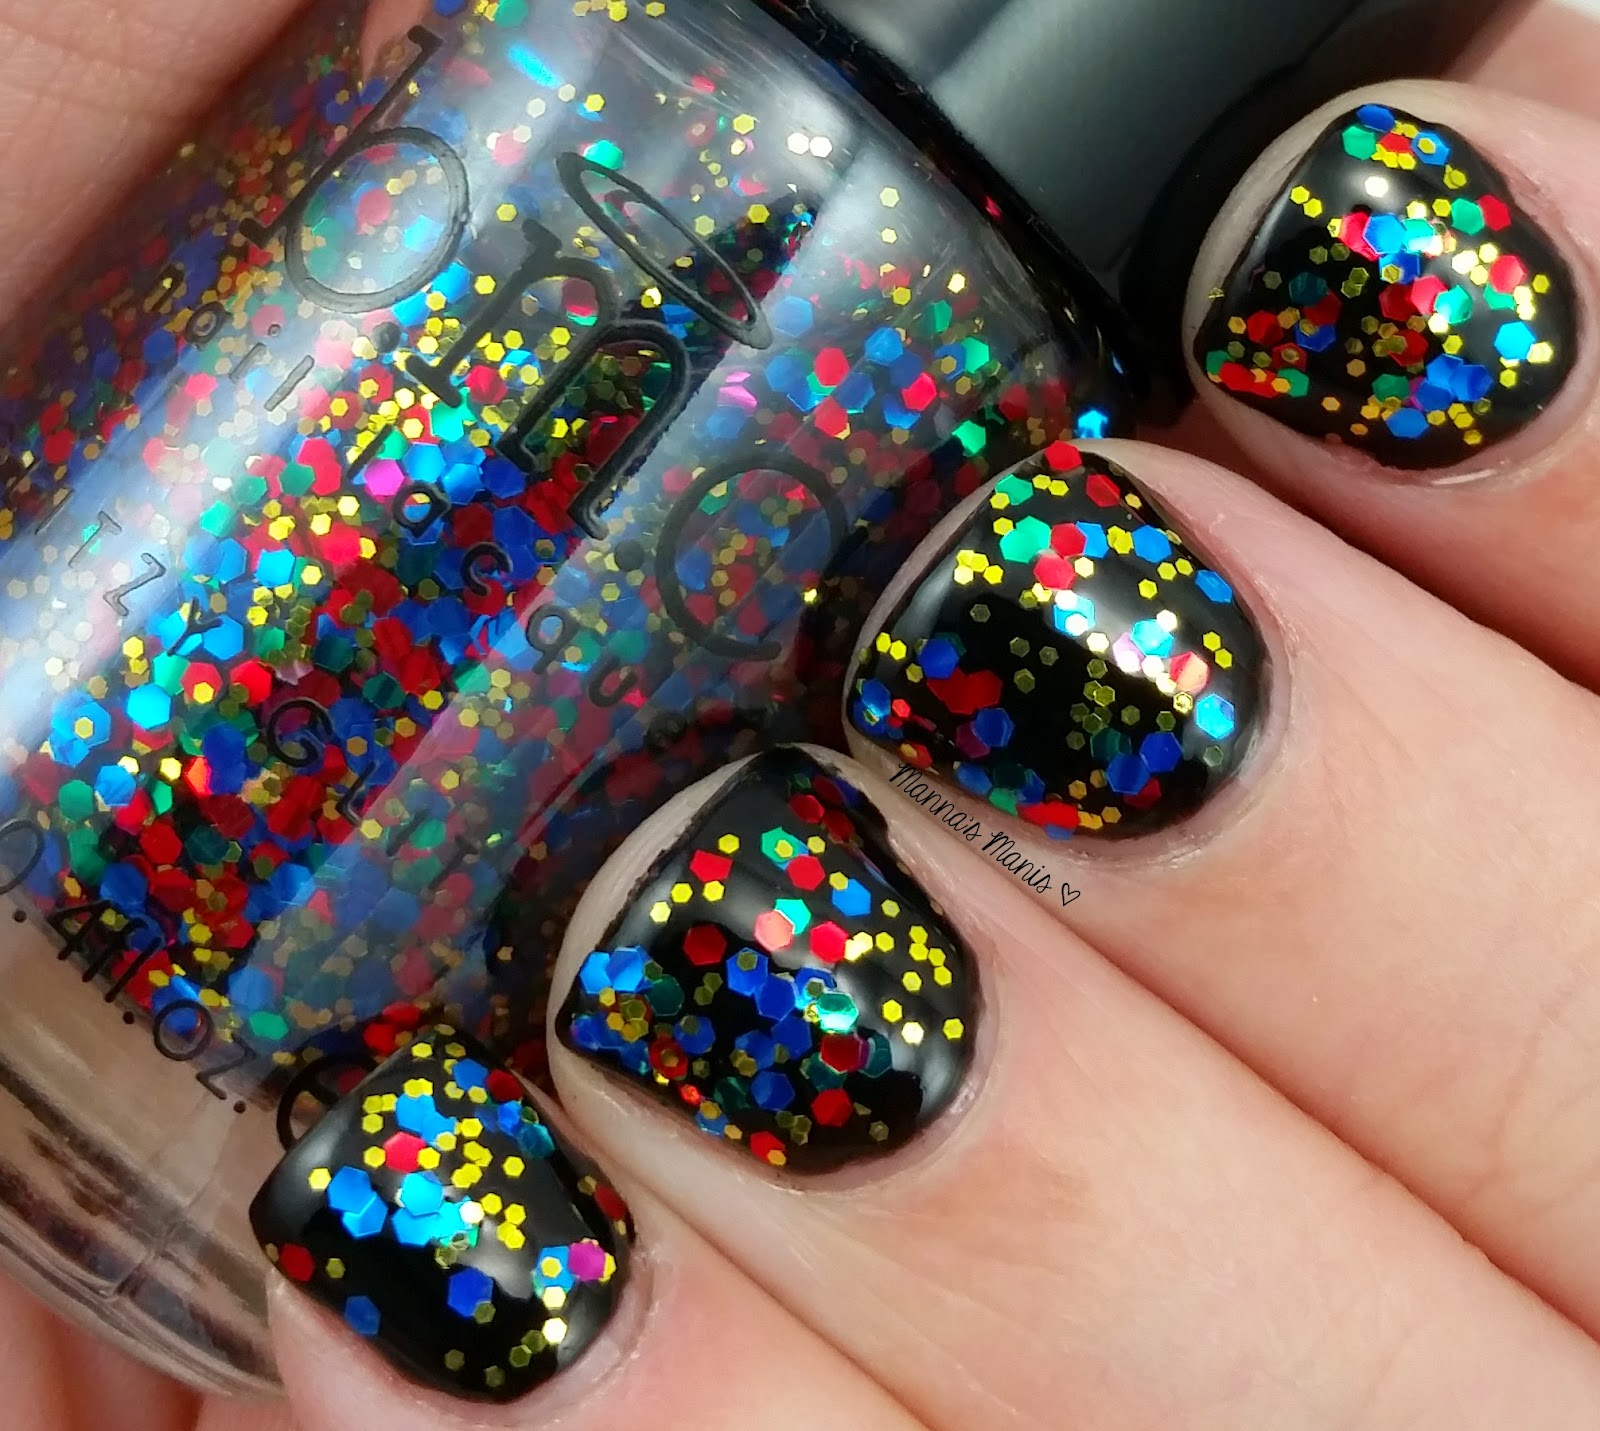 BMC Sin City, a multicolored glitter nail polish